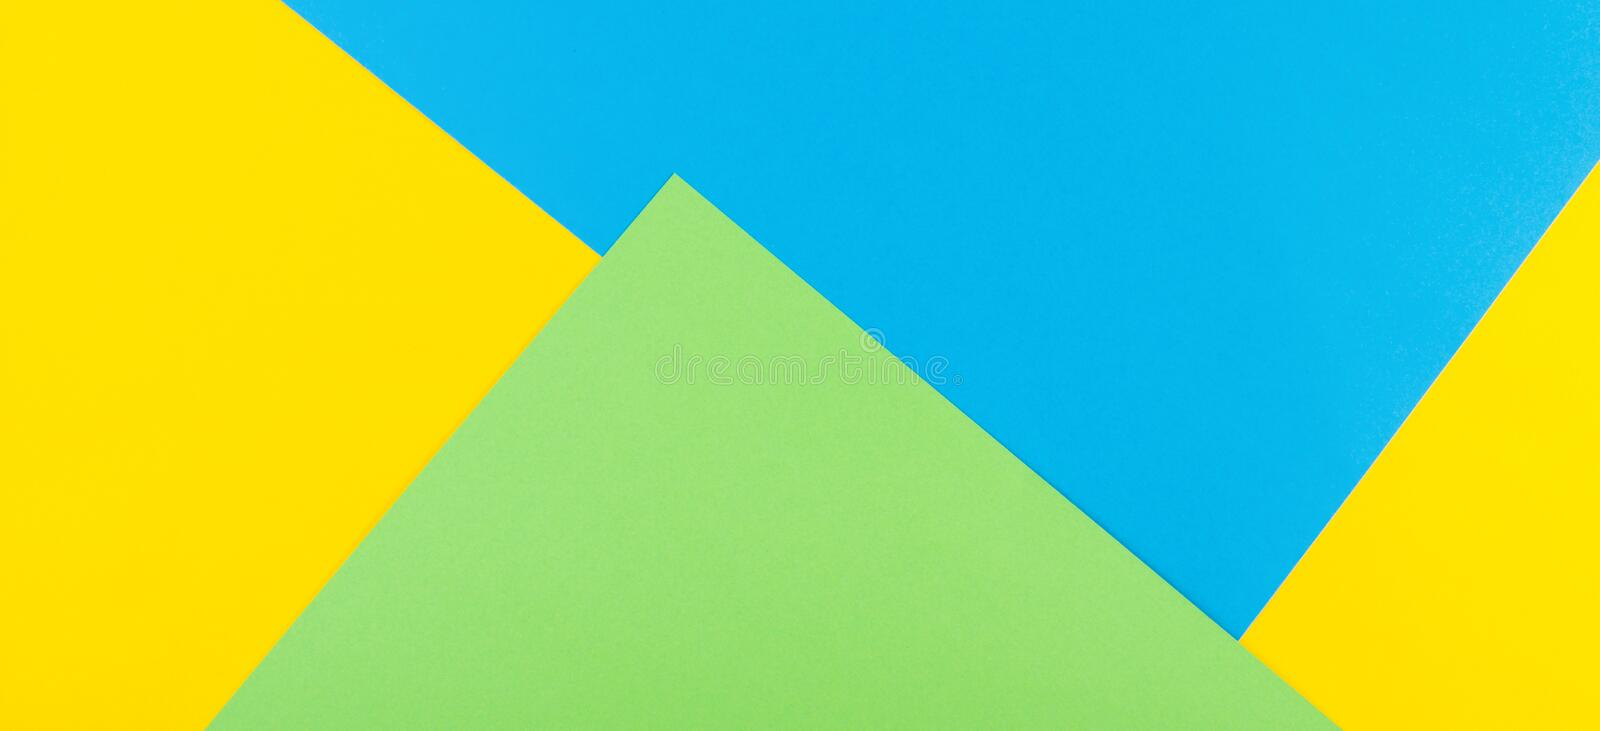 Abstract geometric paper background. Yellow, blue and green colors. Abstract geometric paper banner background. Yellow, blue and green colors stock photography